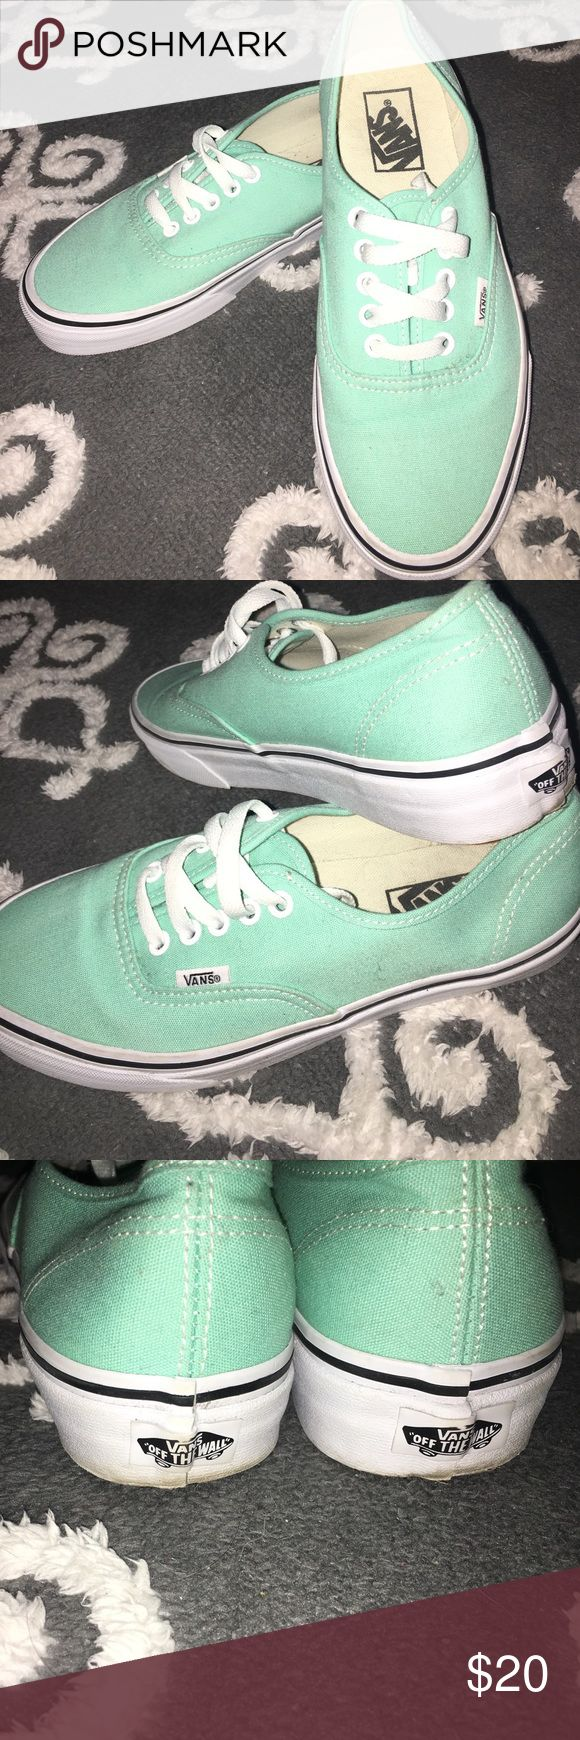 Mint green Vans SZ 8 The perfect colored vans for any neutral outfit! Worn once. Has some scuffs on the edges and back but no wear or stains. Smoke free home Vans Shoes Sneakers